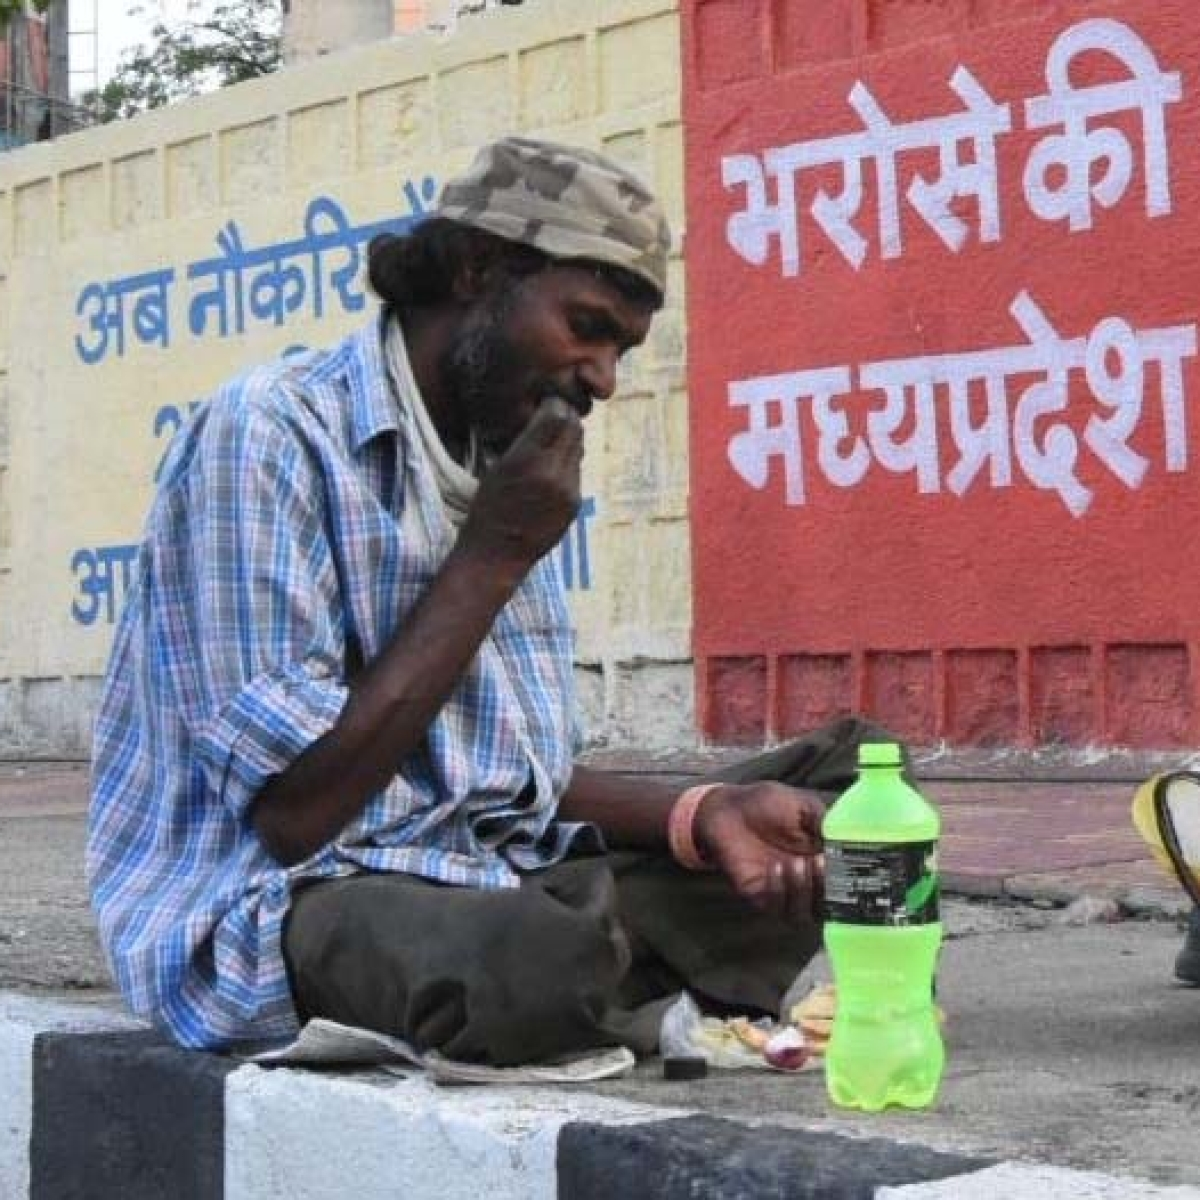 Bhopal: Many work behind scenes for labourers, pour out love through food packets